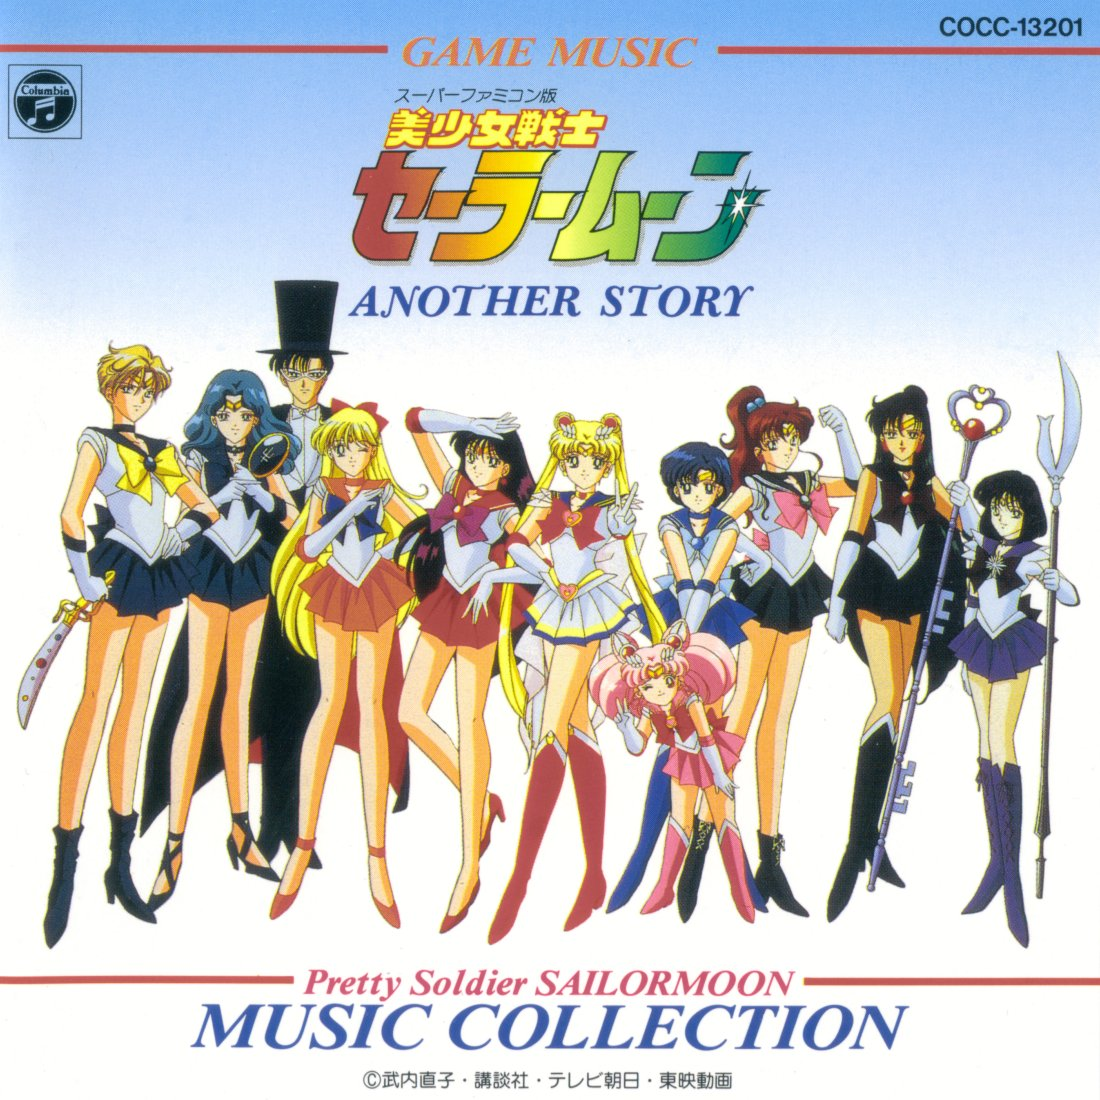 Game Music Bishoujo Senshi Sailor Moon: Another Story